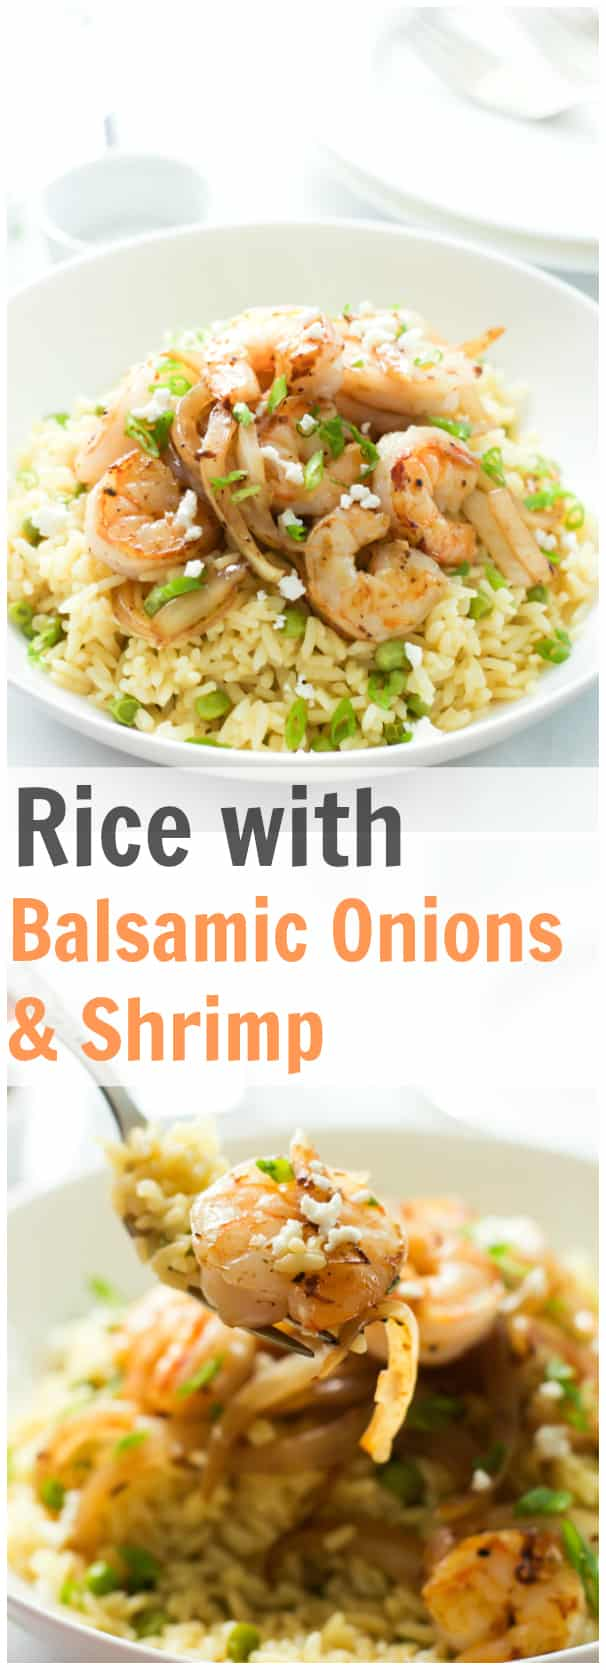 Rice with Balsamic Onions & Shrimp